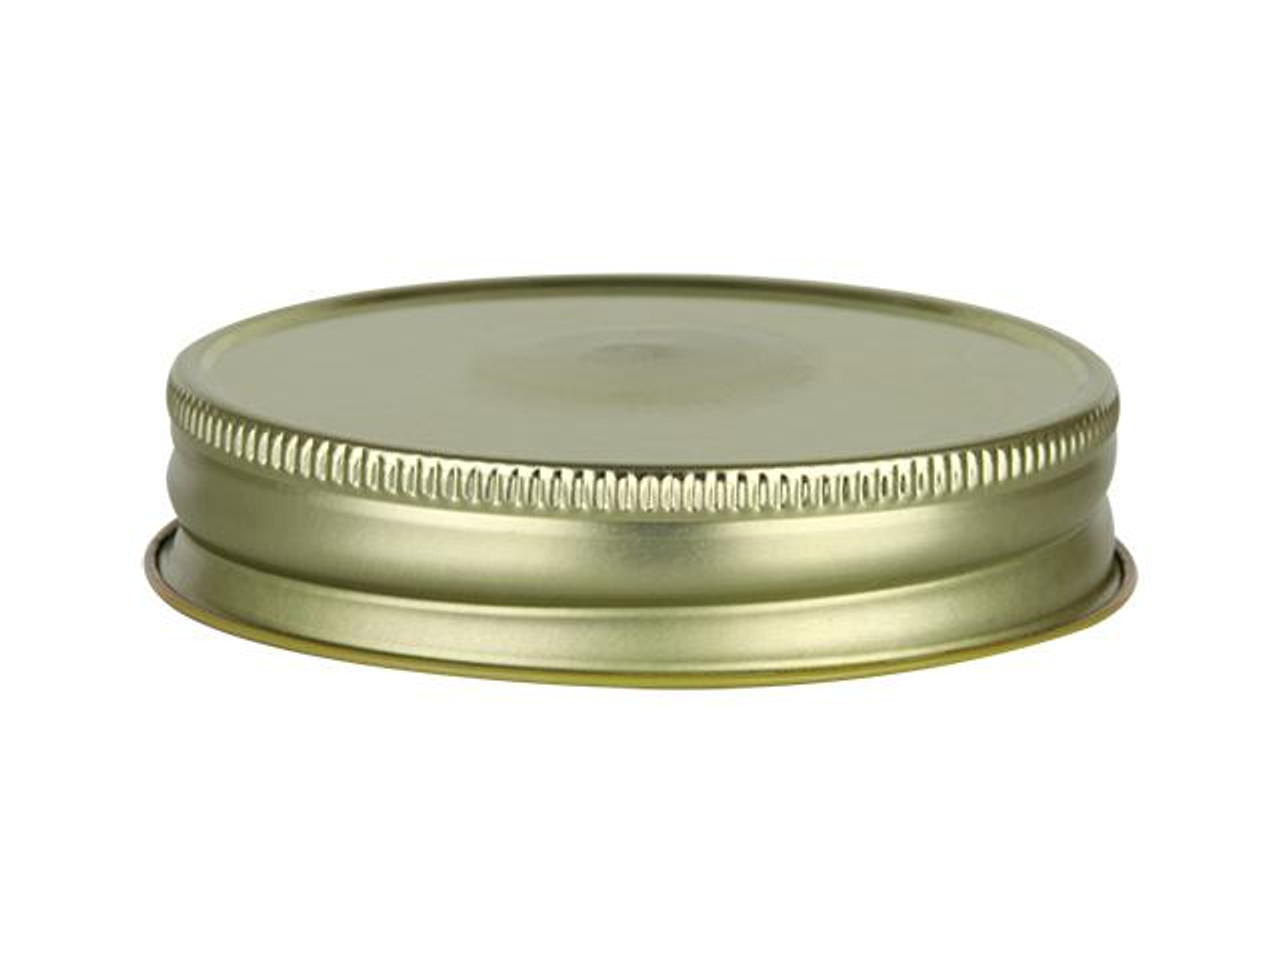 48/400 Gold Metal Cap